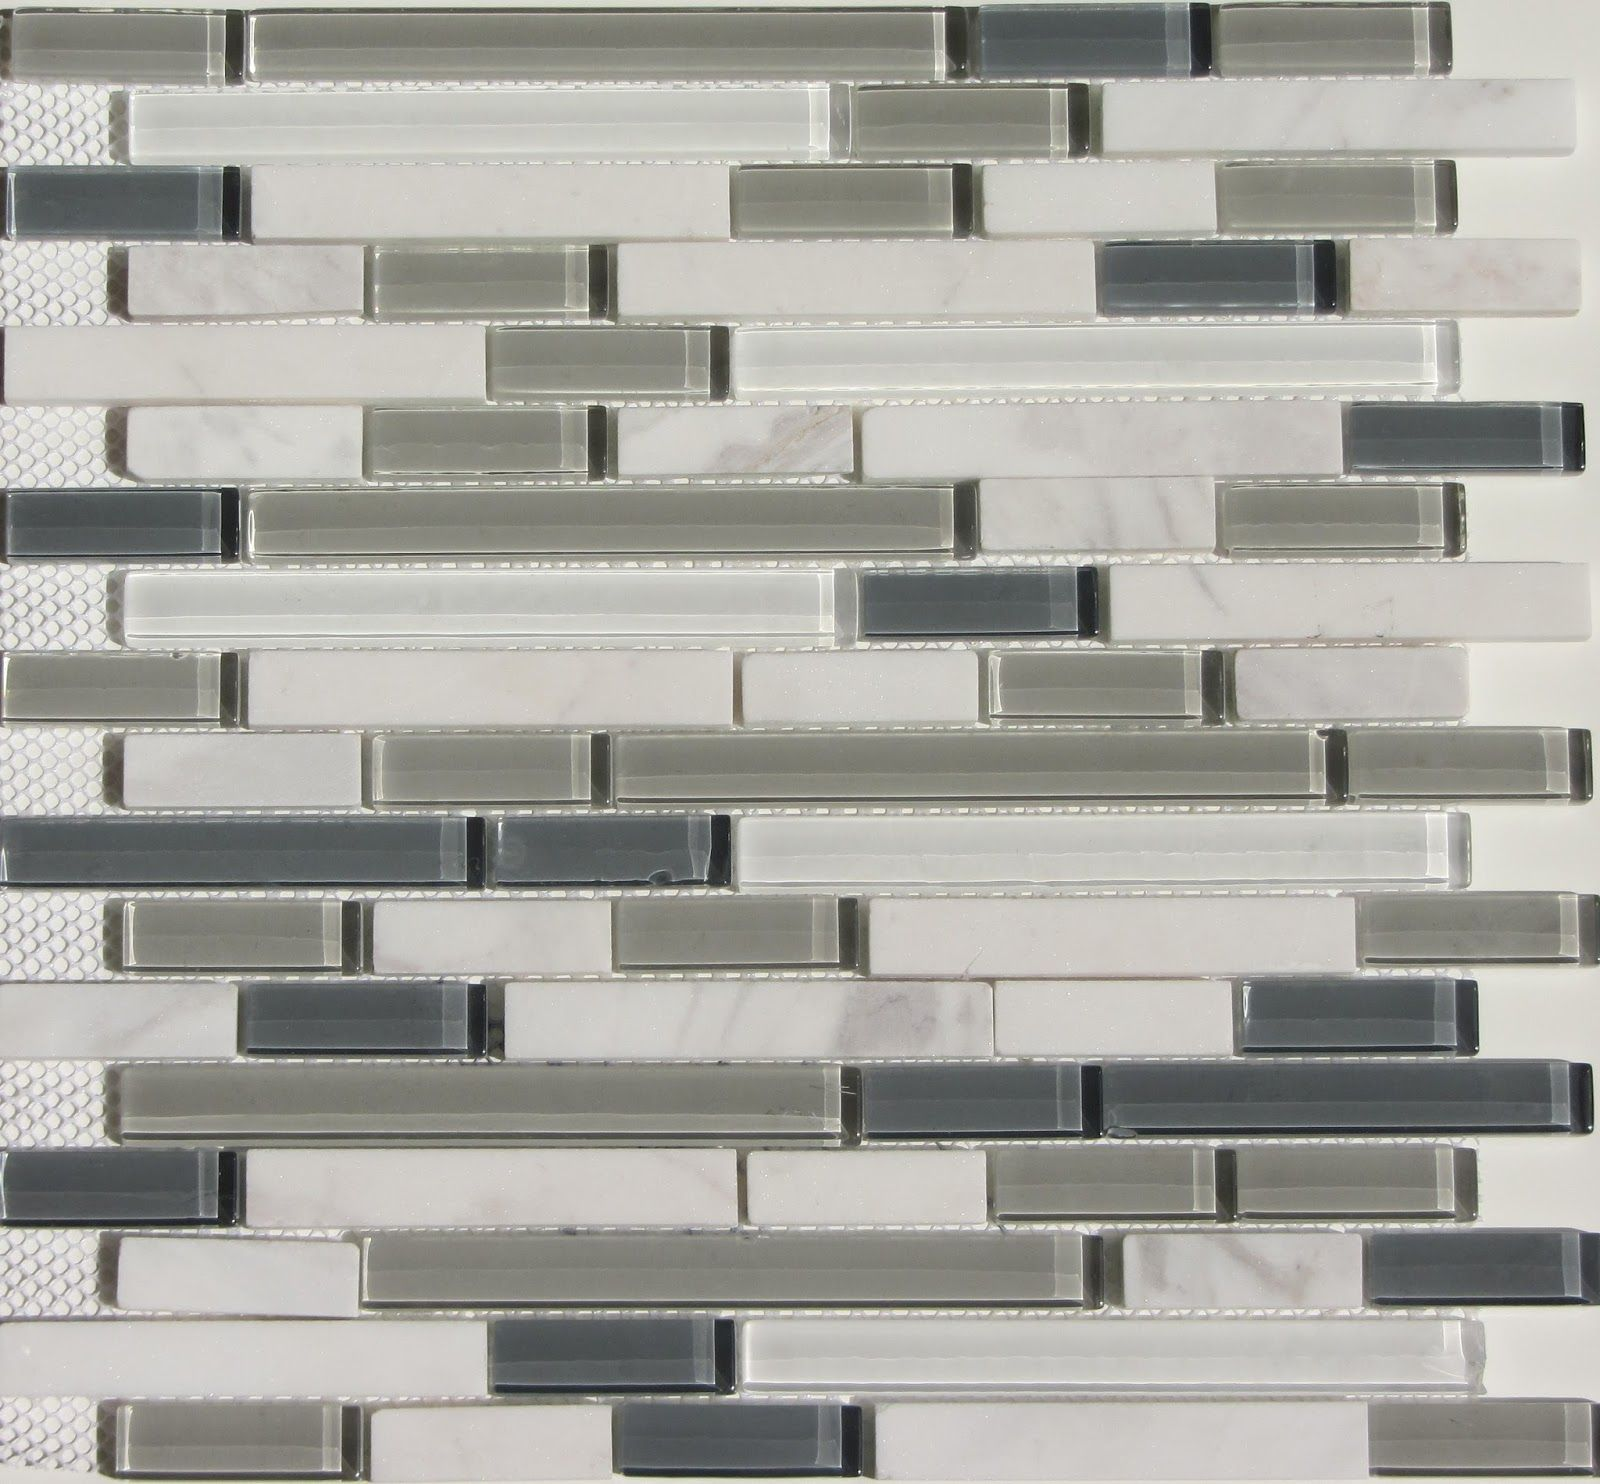 Introducing Bliss Select Glass and Stone Blend Mosaics